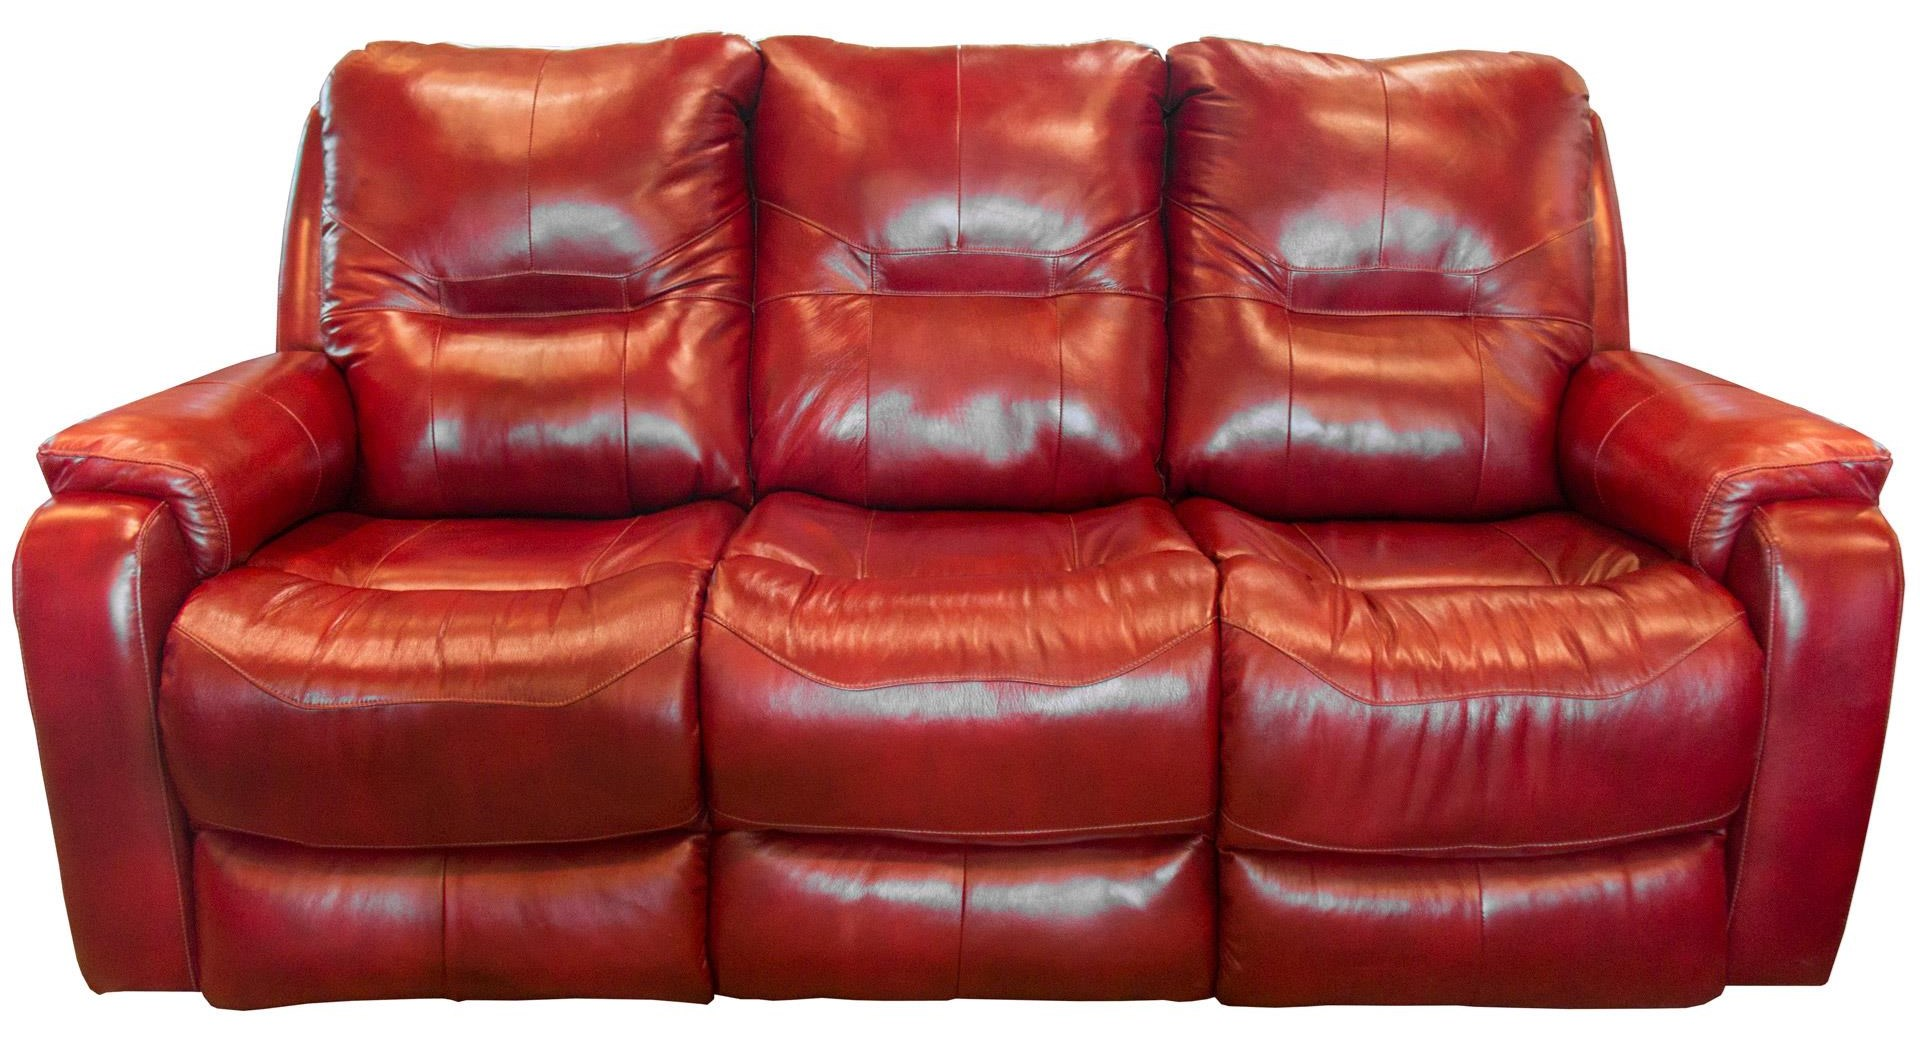 Southern Motion Marsala Power Reclining Sofa - Item Number: 733-31P-906-42